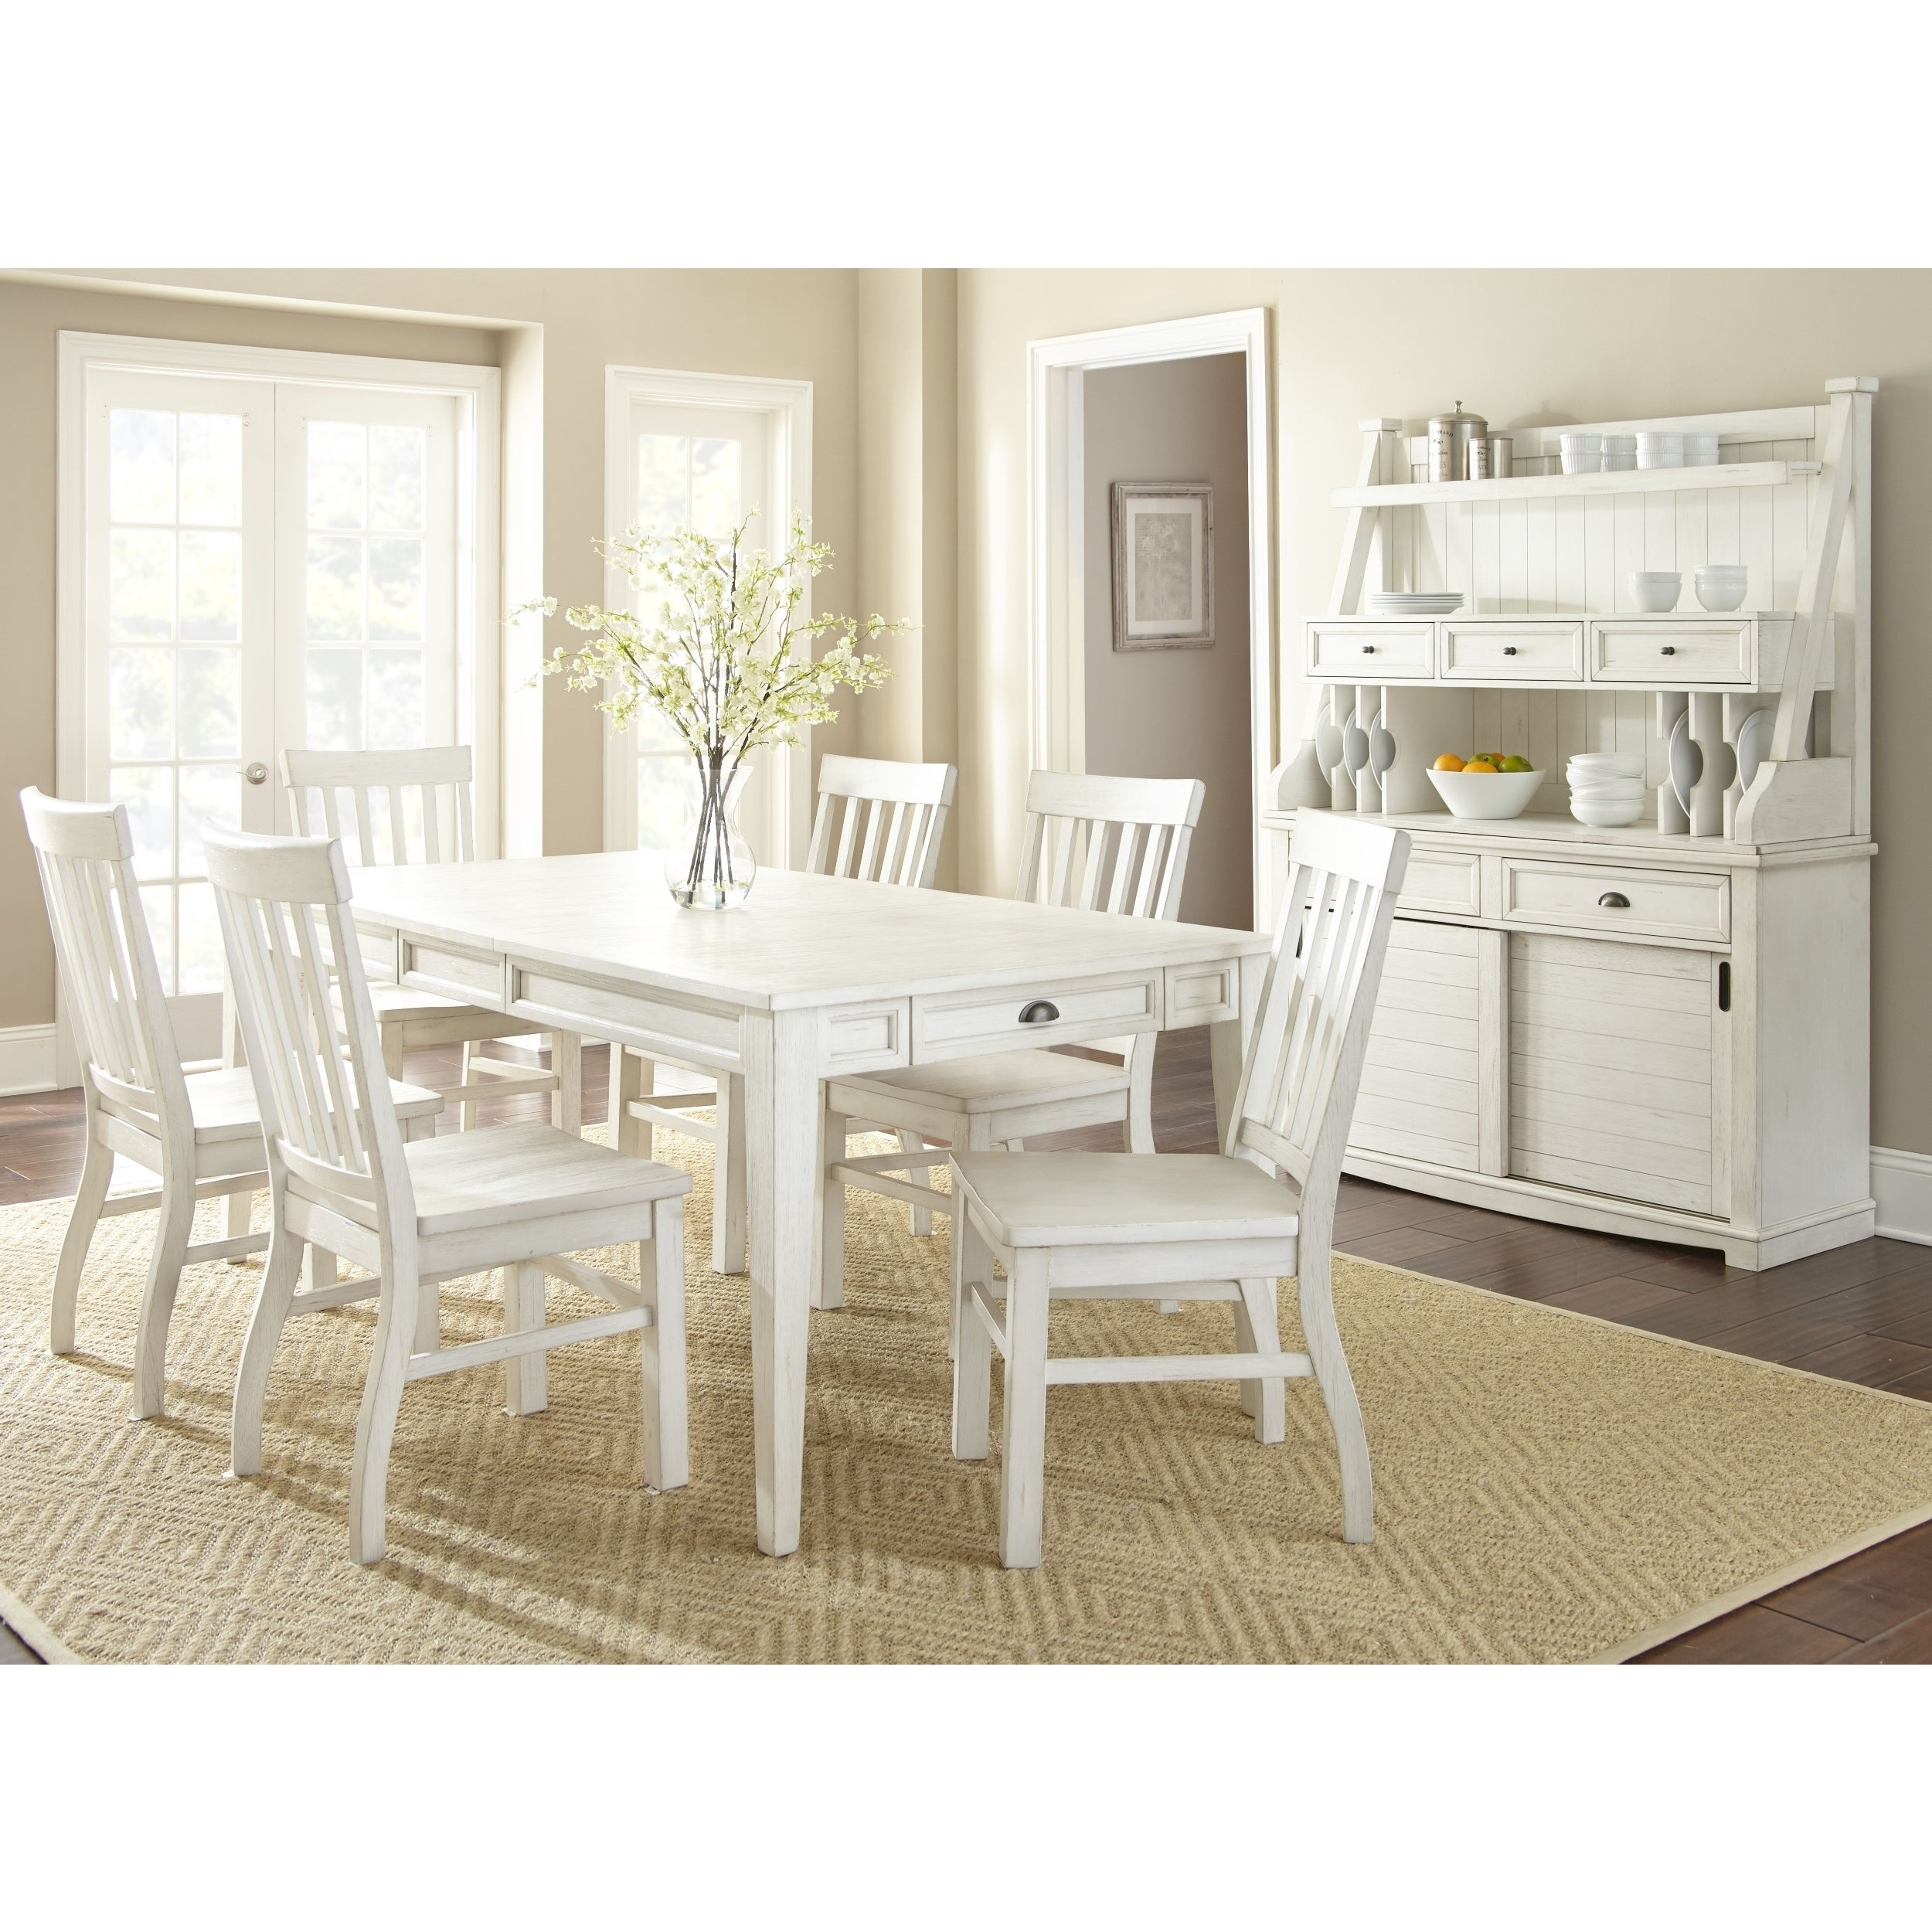 Cottonville Antique White Farmhouse Dining Set With Chairs By Greyson Living On Sale Overstock 17182326